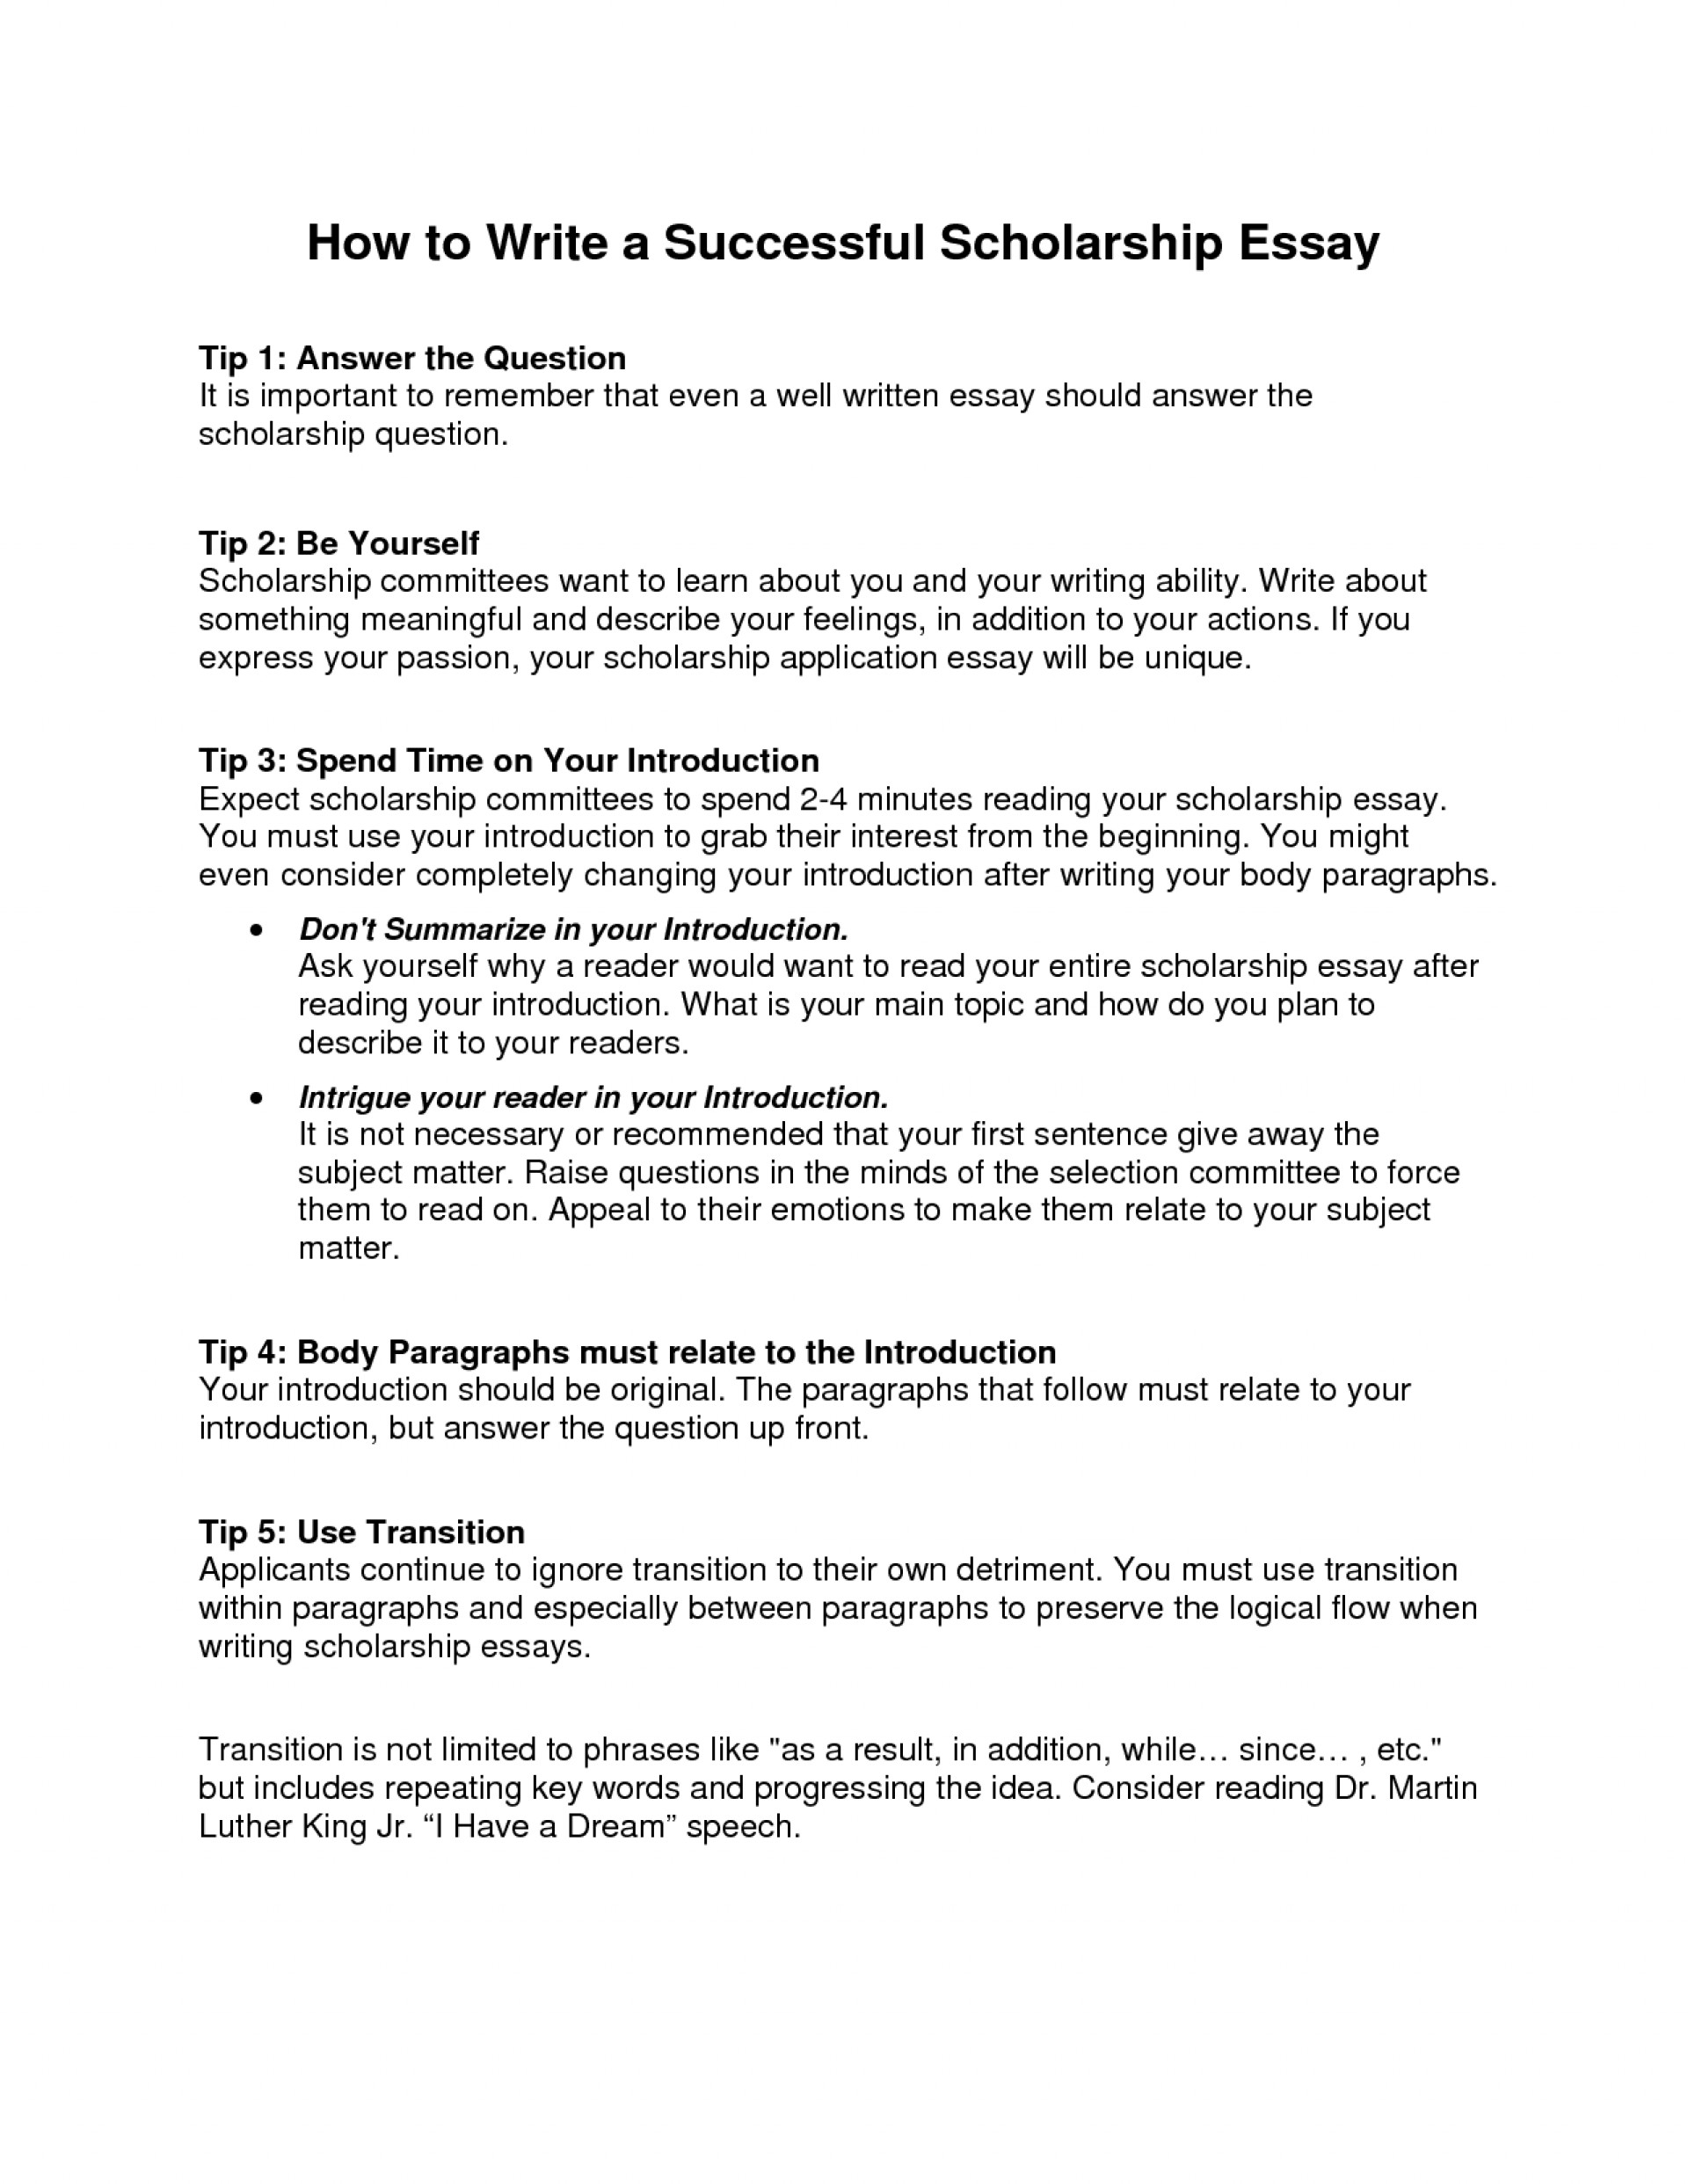 007 How To Write And Essay Example Unique An Paper In Apa Format Conclusion Mla 1920